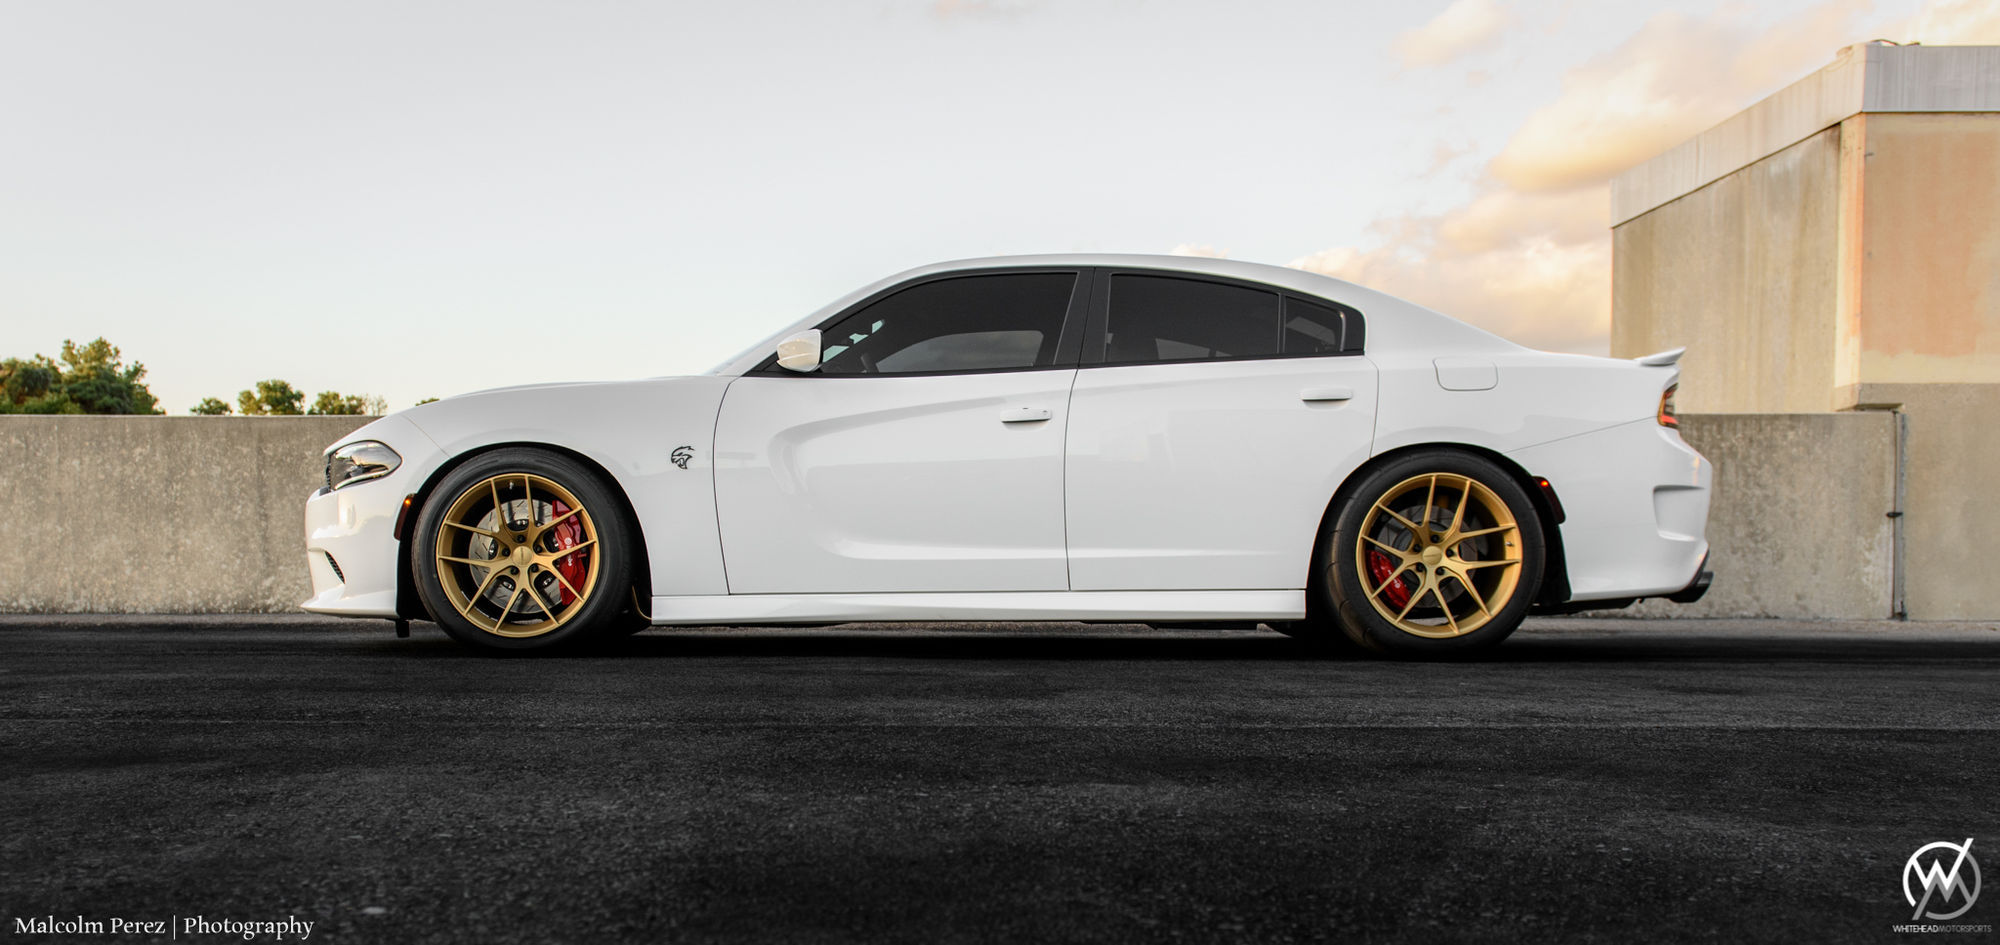 2017 Dodge Charger   Cody's Whitehead Motorsports Dodge Charger Hellcat on Forgeline One Piece Forged Monoblock VX1 Wheels